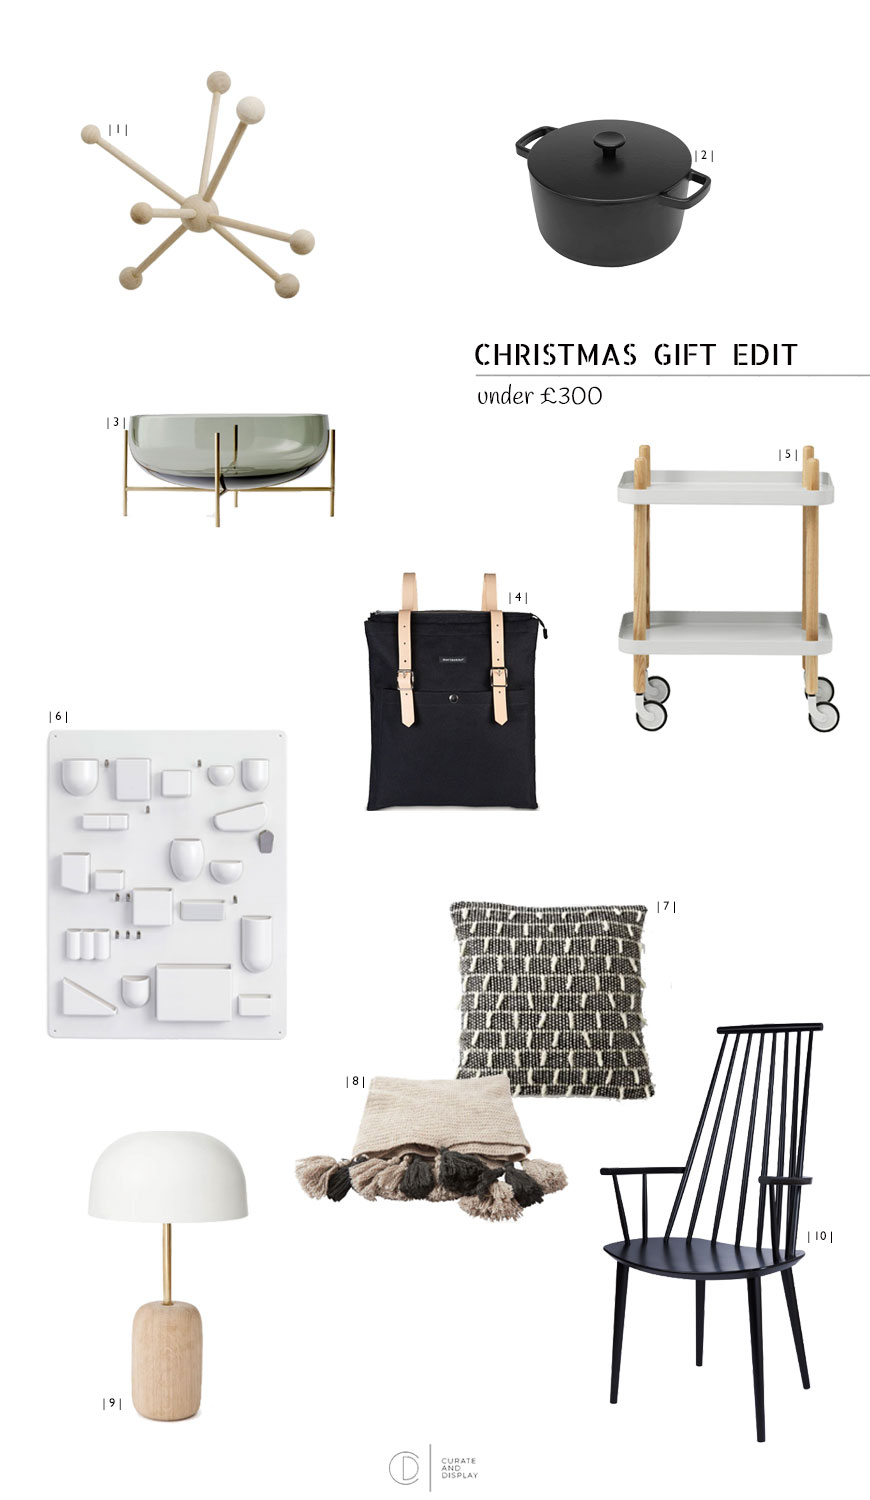 Christmas gift edit, Christmas 2017, Christmas gift guide, gift guide, gift for design lovers, interiors gifts